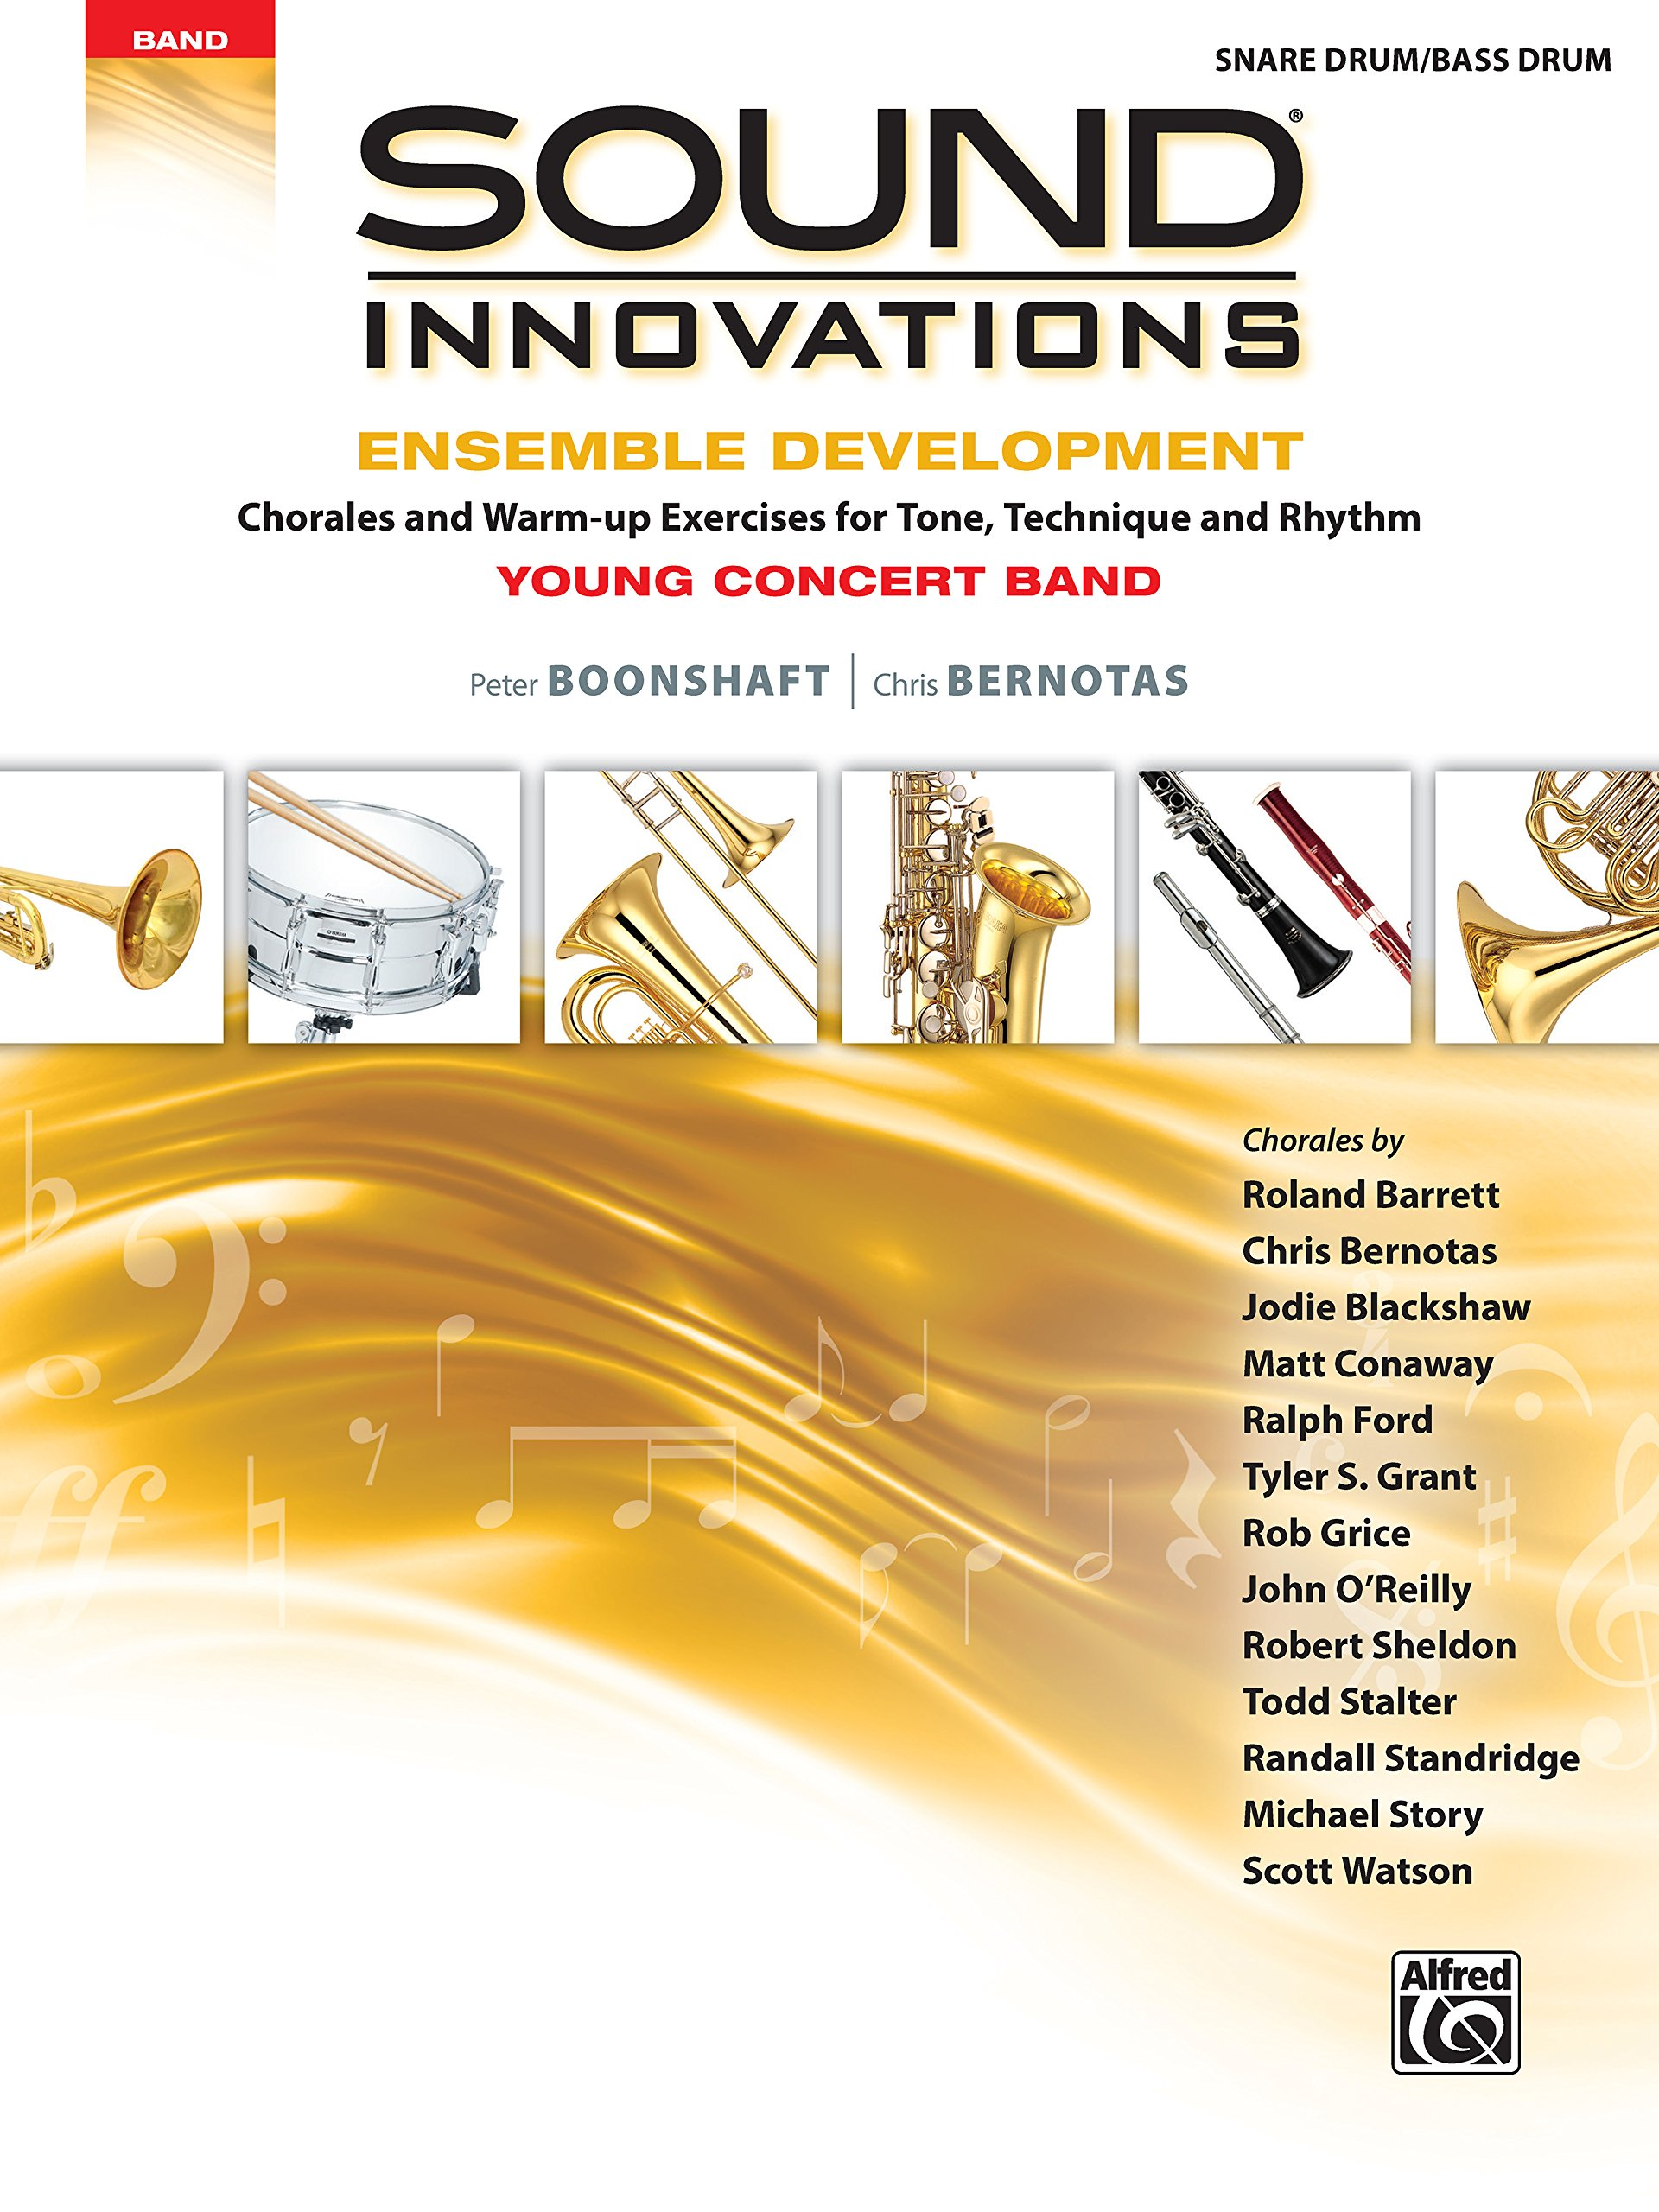 Sound Innovations for Concert Band -- Ensemble Development for Young Concert Band: Chorales and Warm-up Exercises for Tone, Technique, and Rhythm (Snare Drum/Bass Drum) PDF Text fb2 ebook